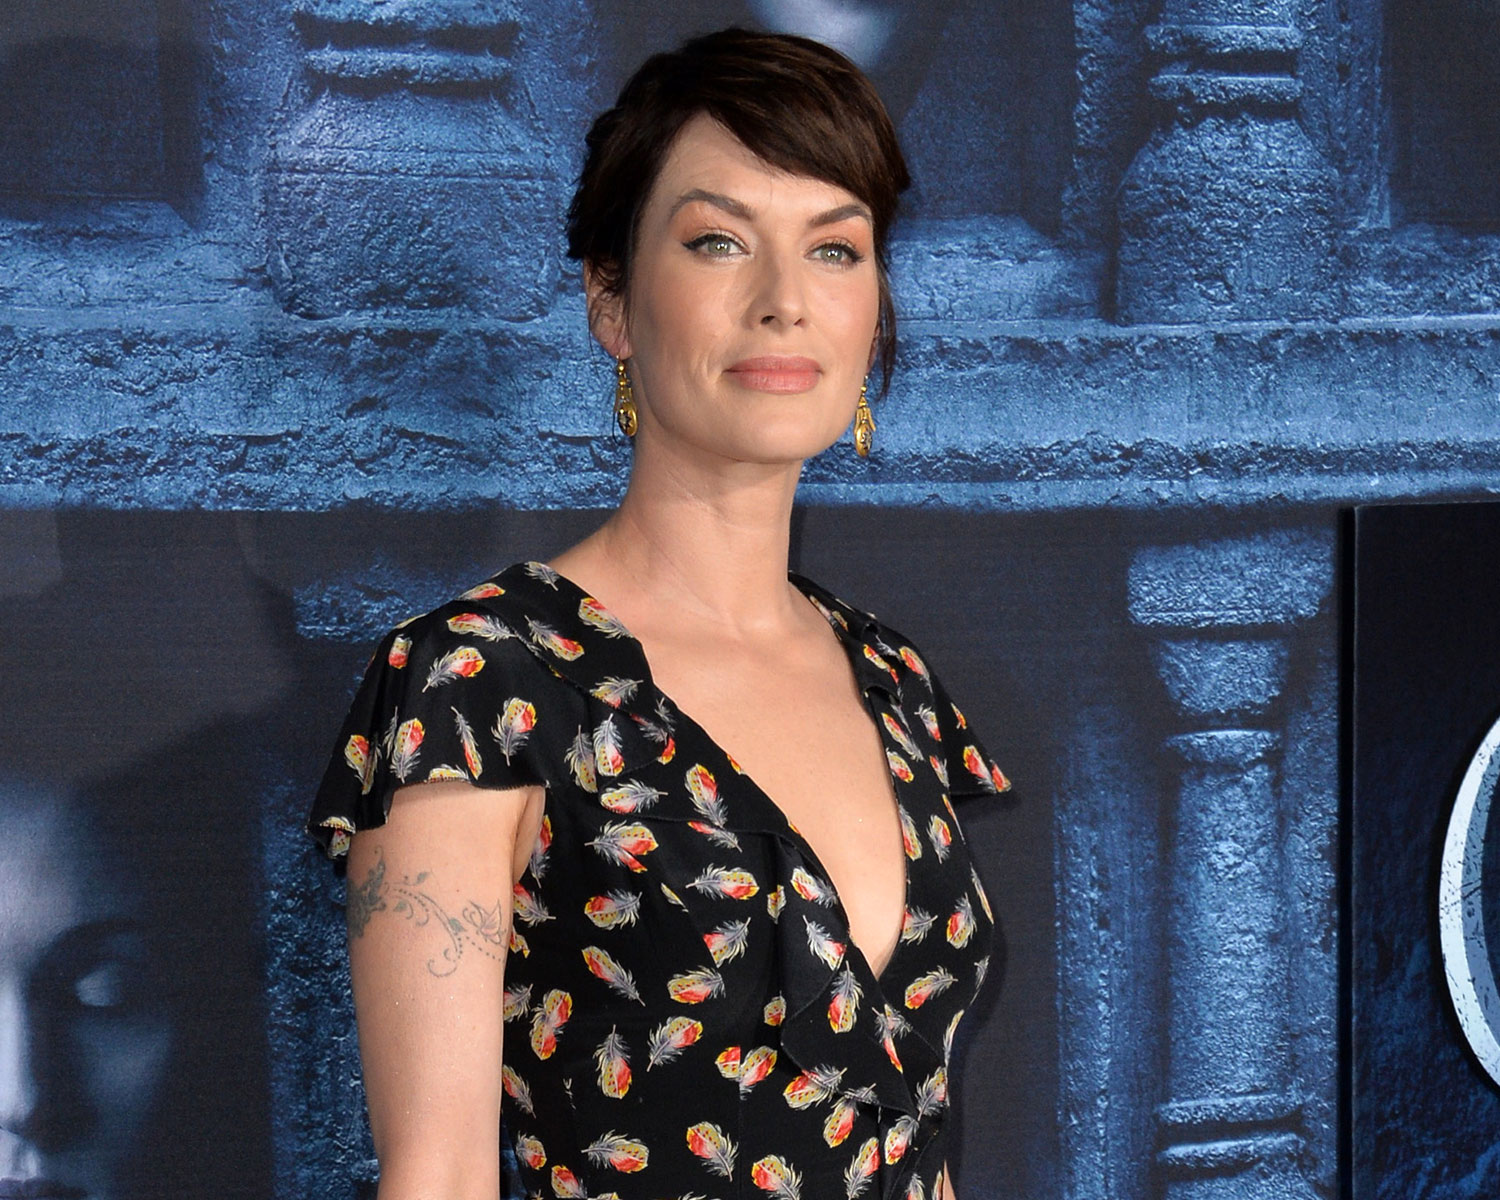 lena headey engaged game of thrones